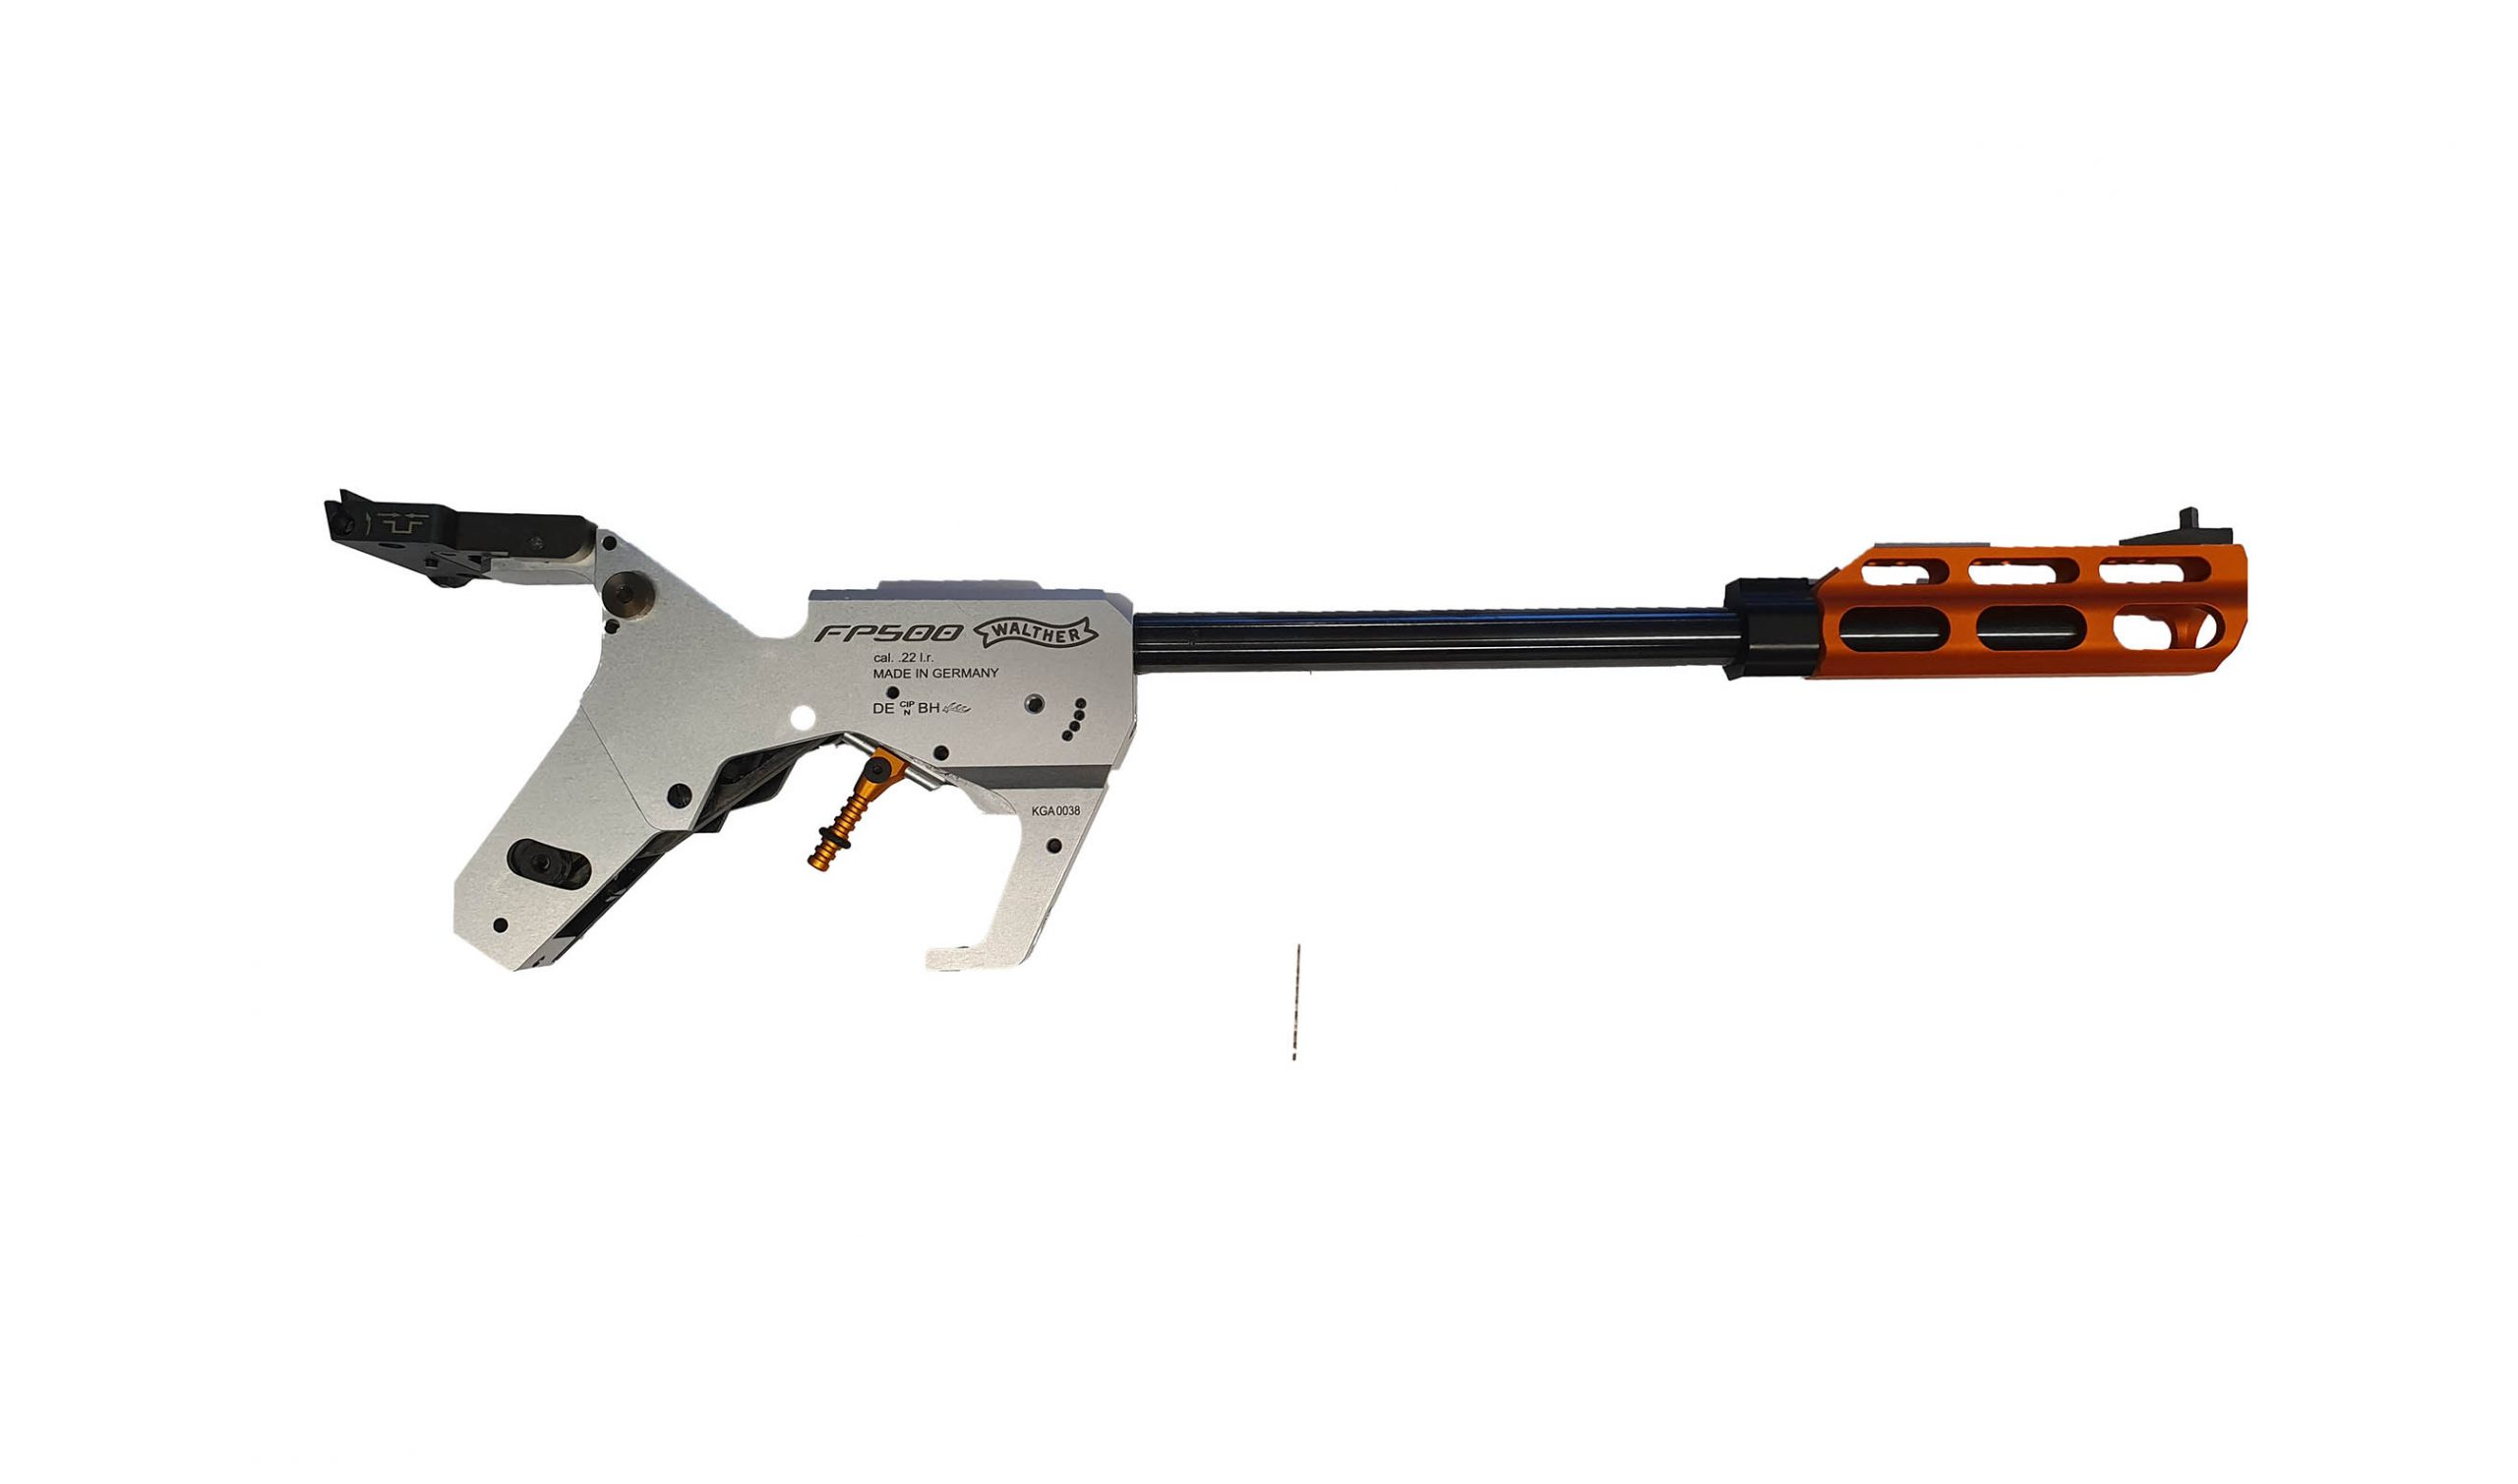 walther-fp500-ohne-griff